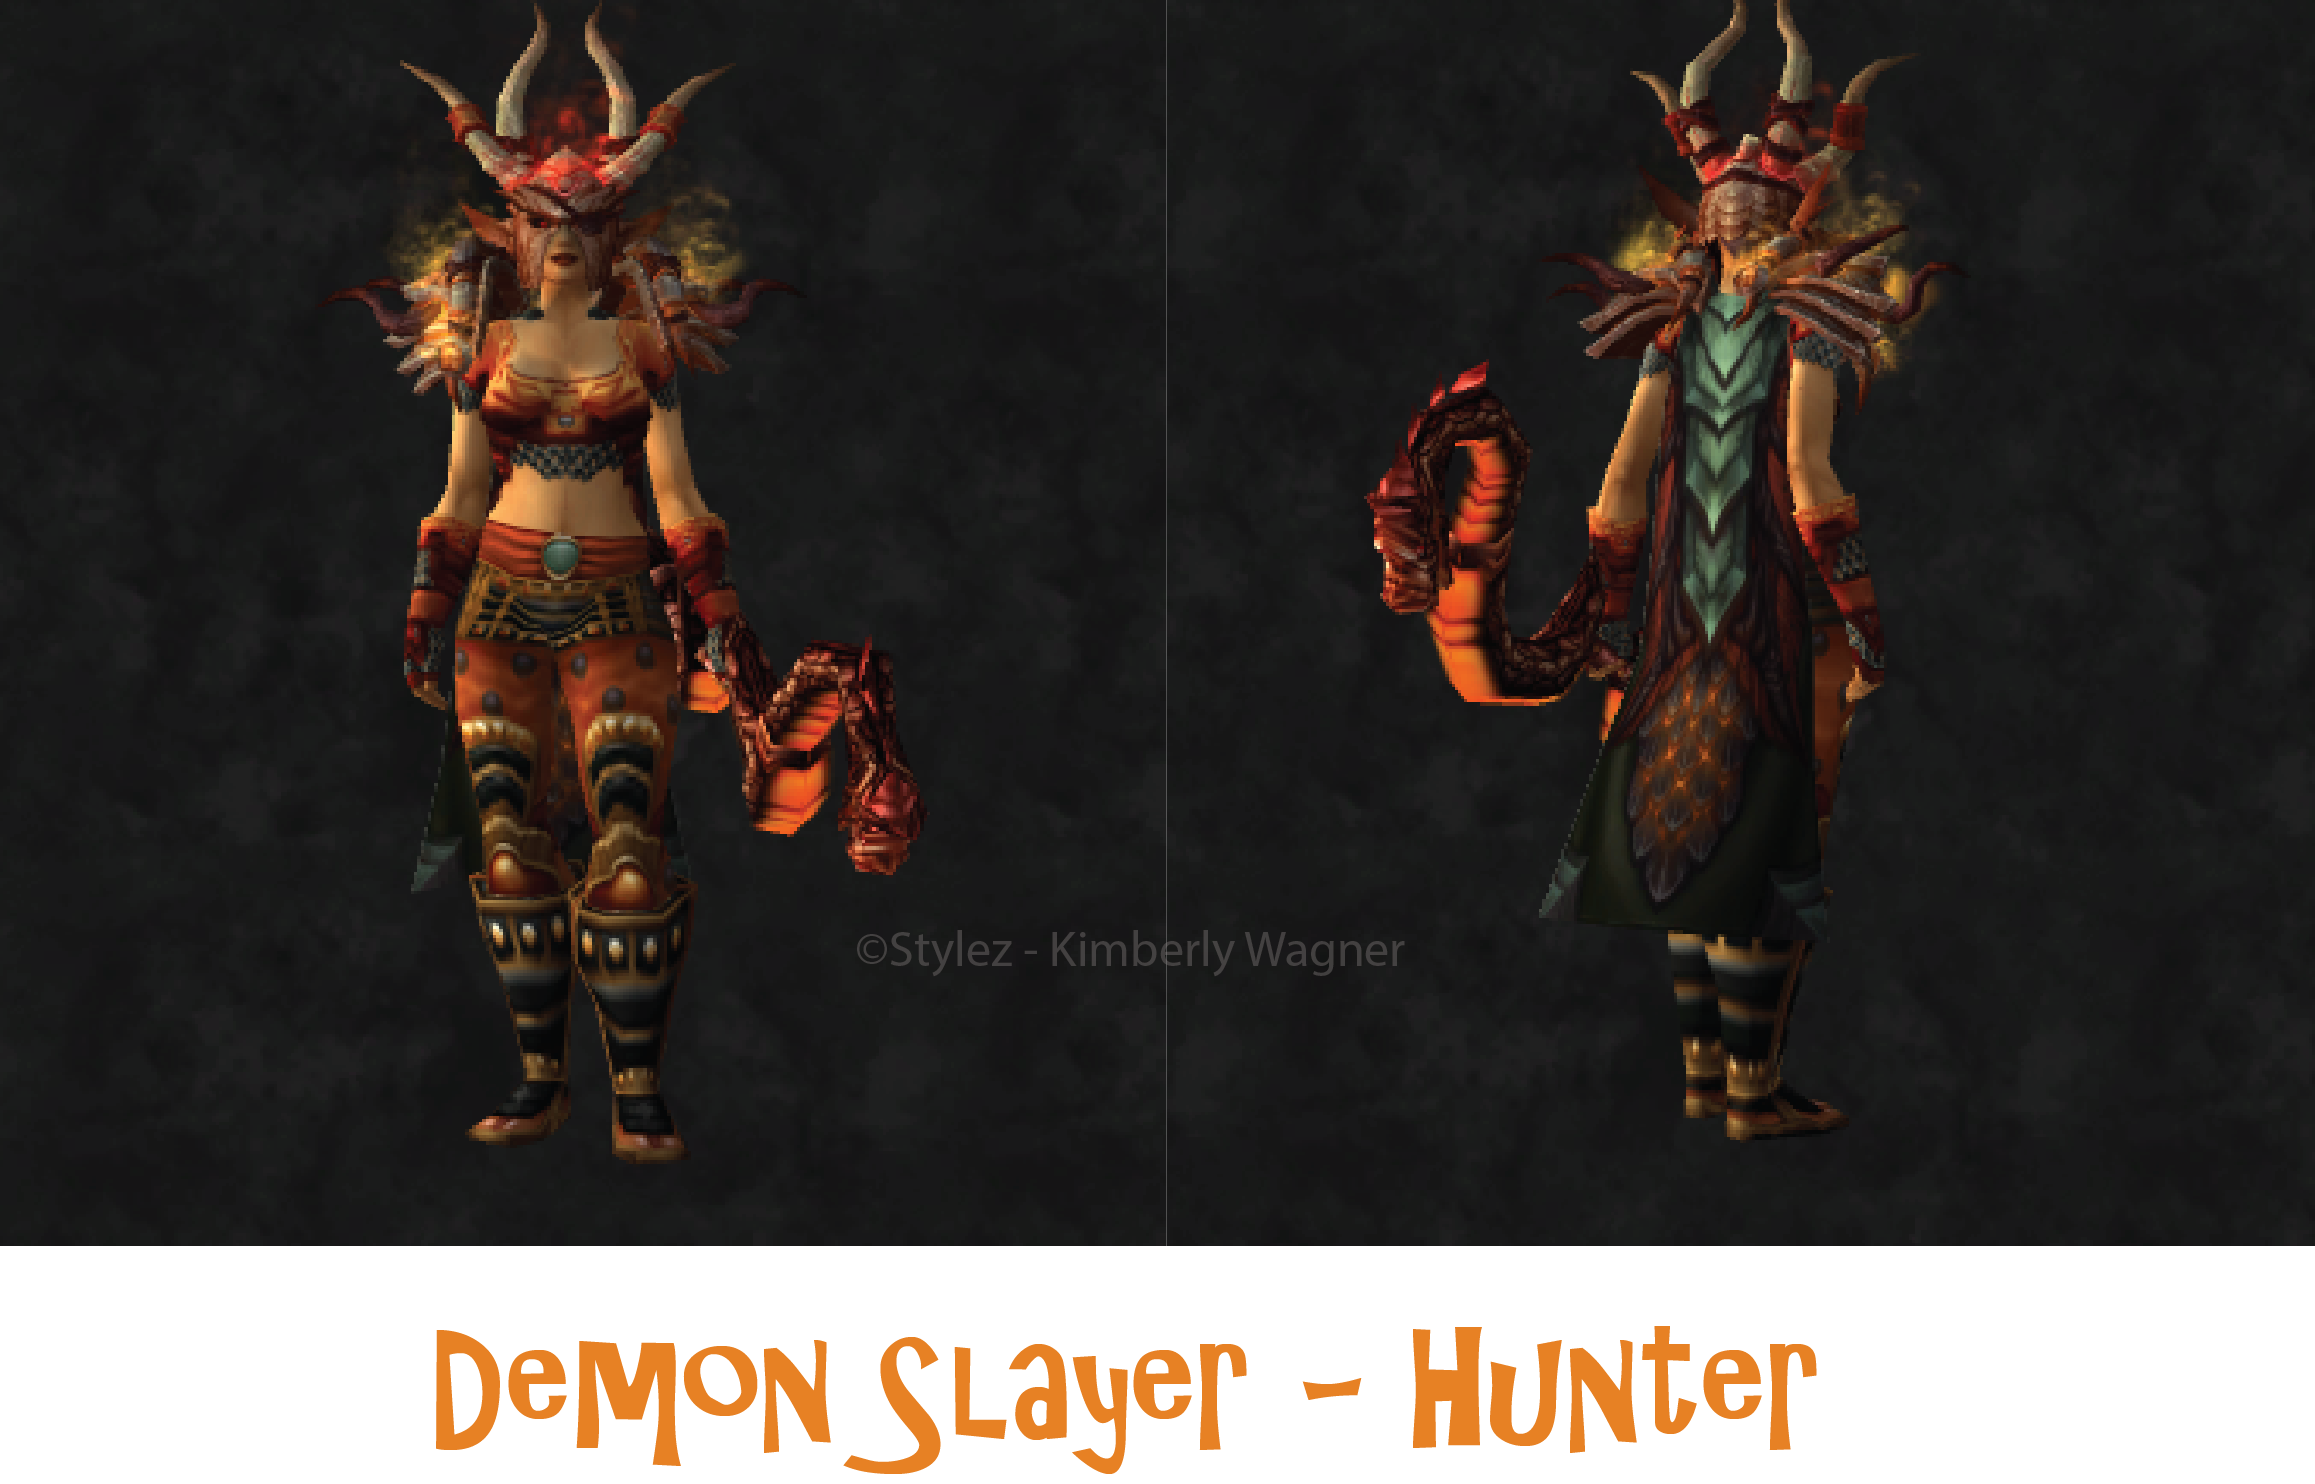 Demon Hunter Transmog Sets of all kinds in Battle for Azeroth. Preview them on any race in the model viewer and filter sets by color, style, tier, and more. Preview them on any race in the model viewer and filter sets by color, style, tier, and more.